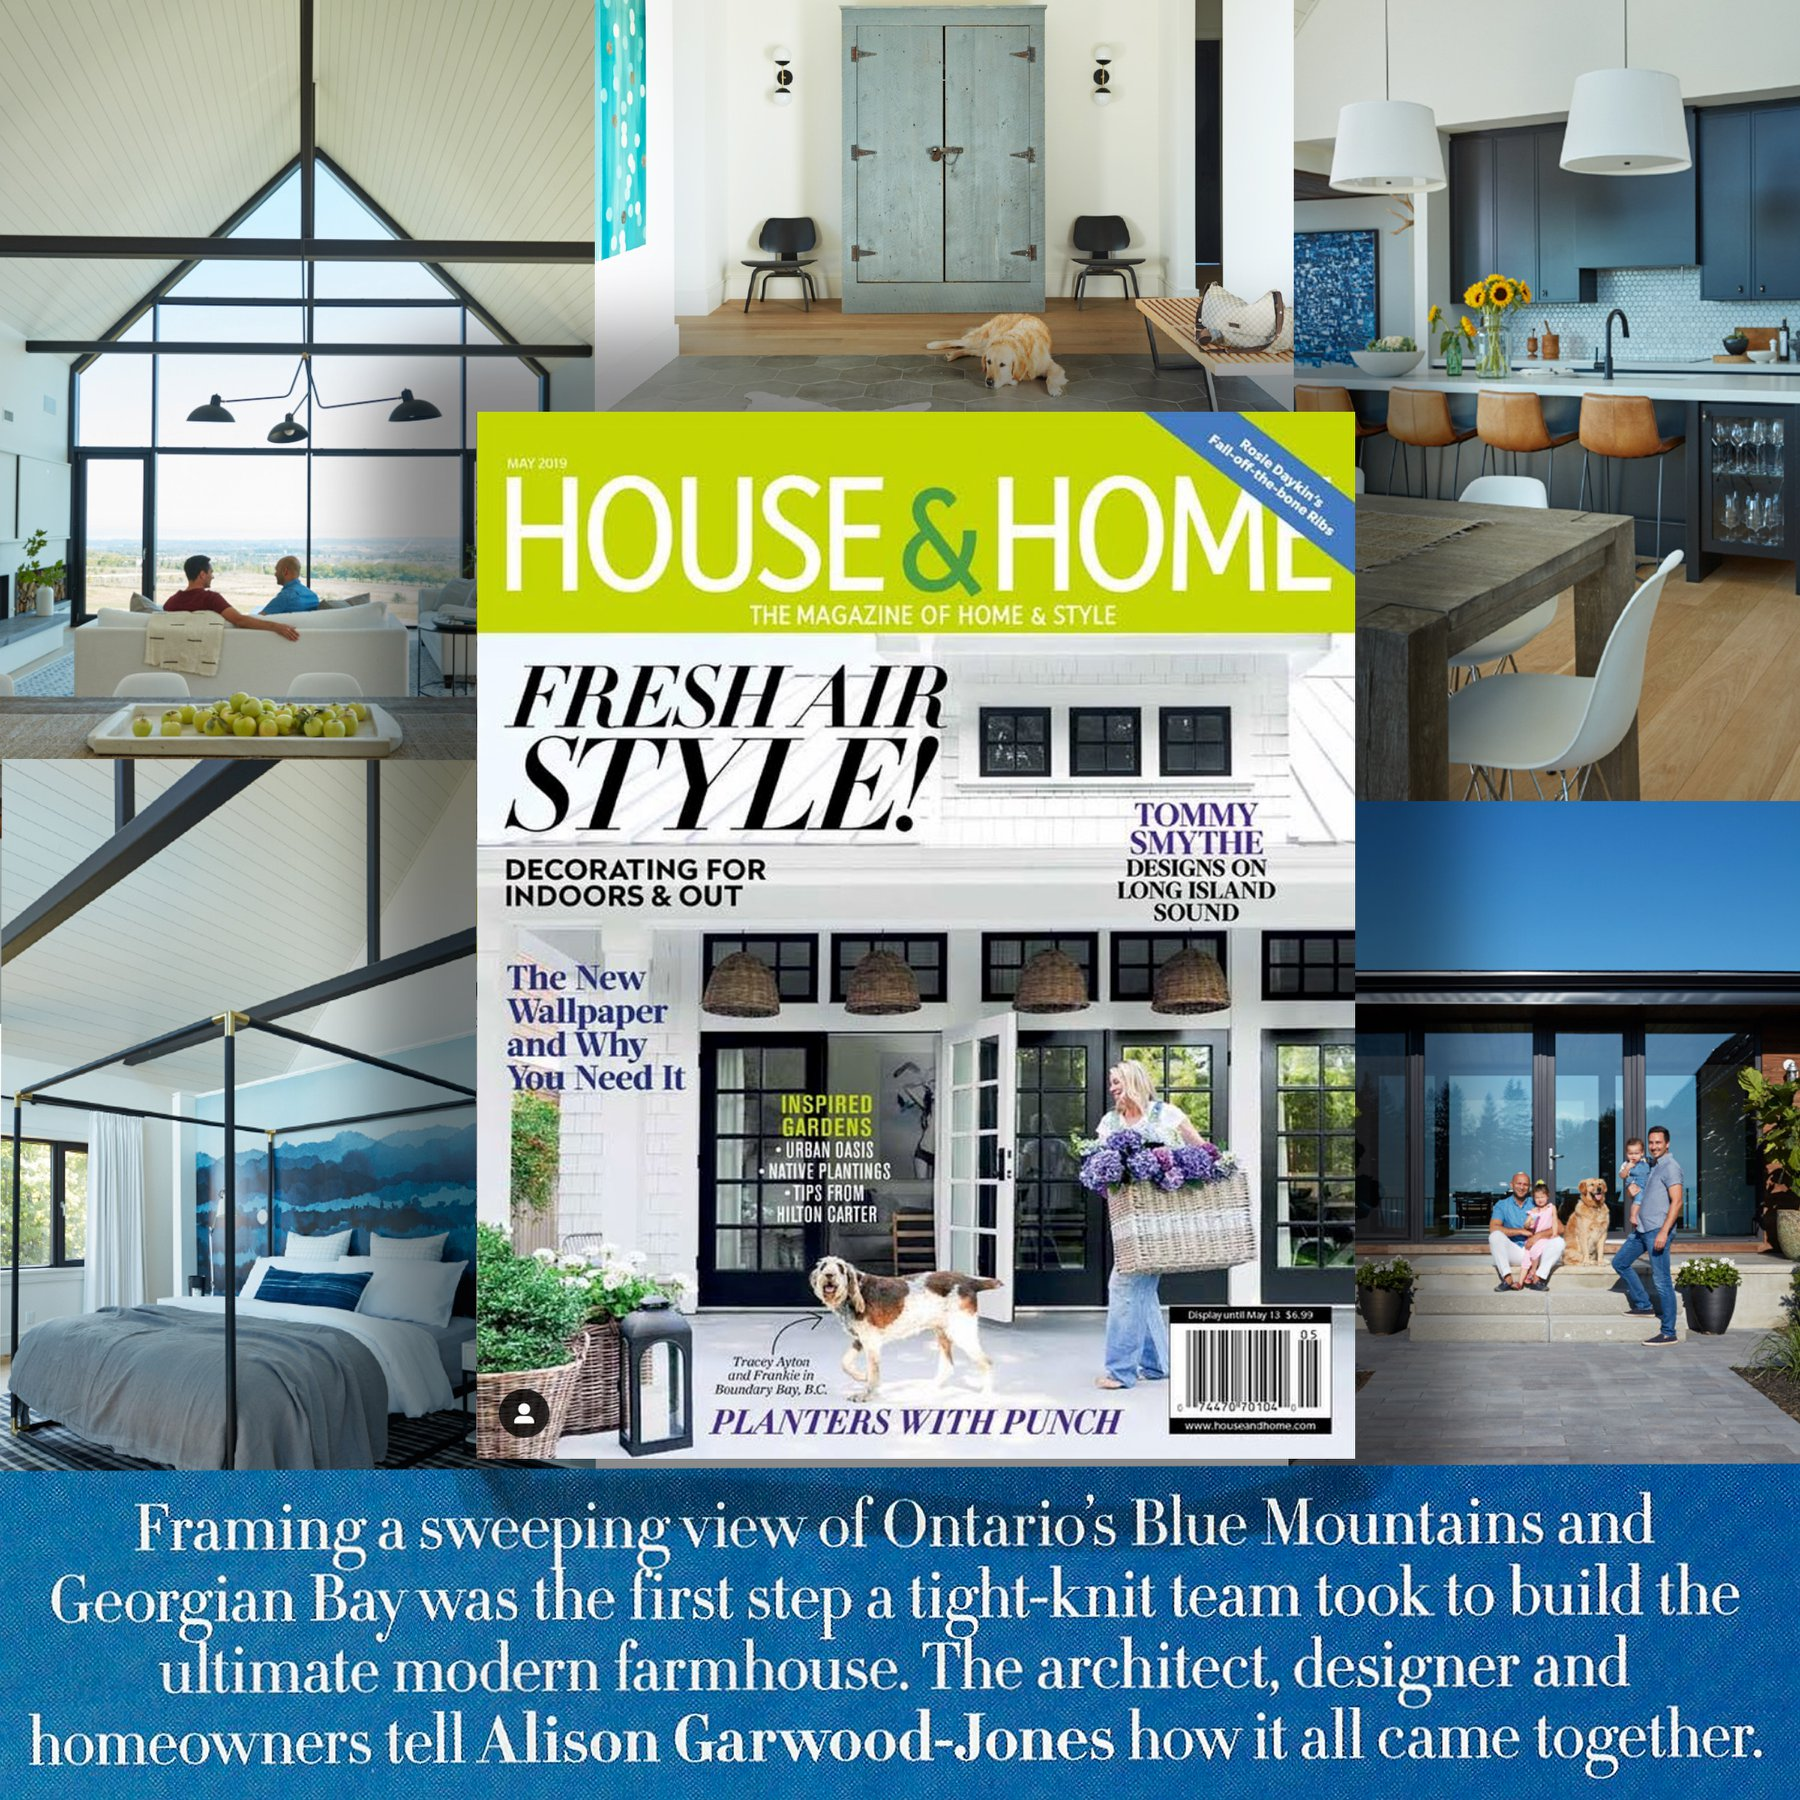 House & Home Article by Alison Garwood-Jones - May 2019